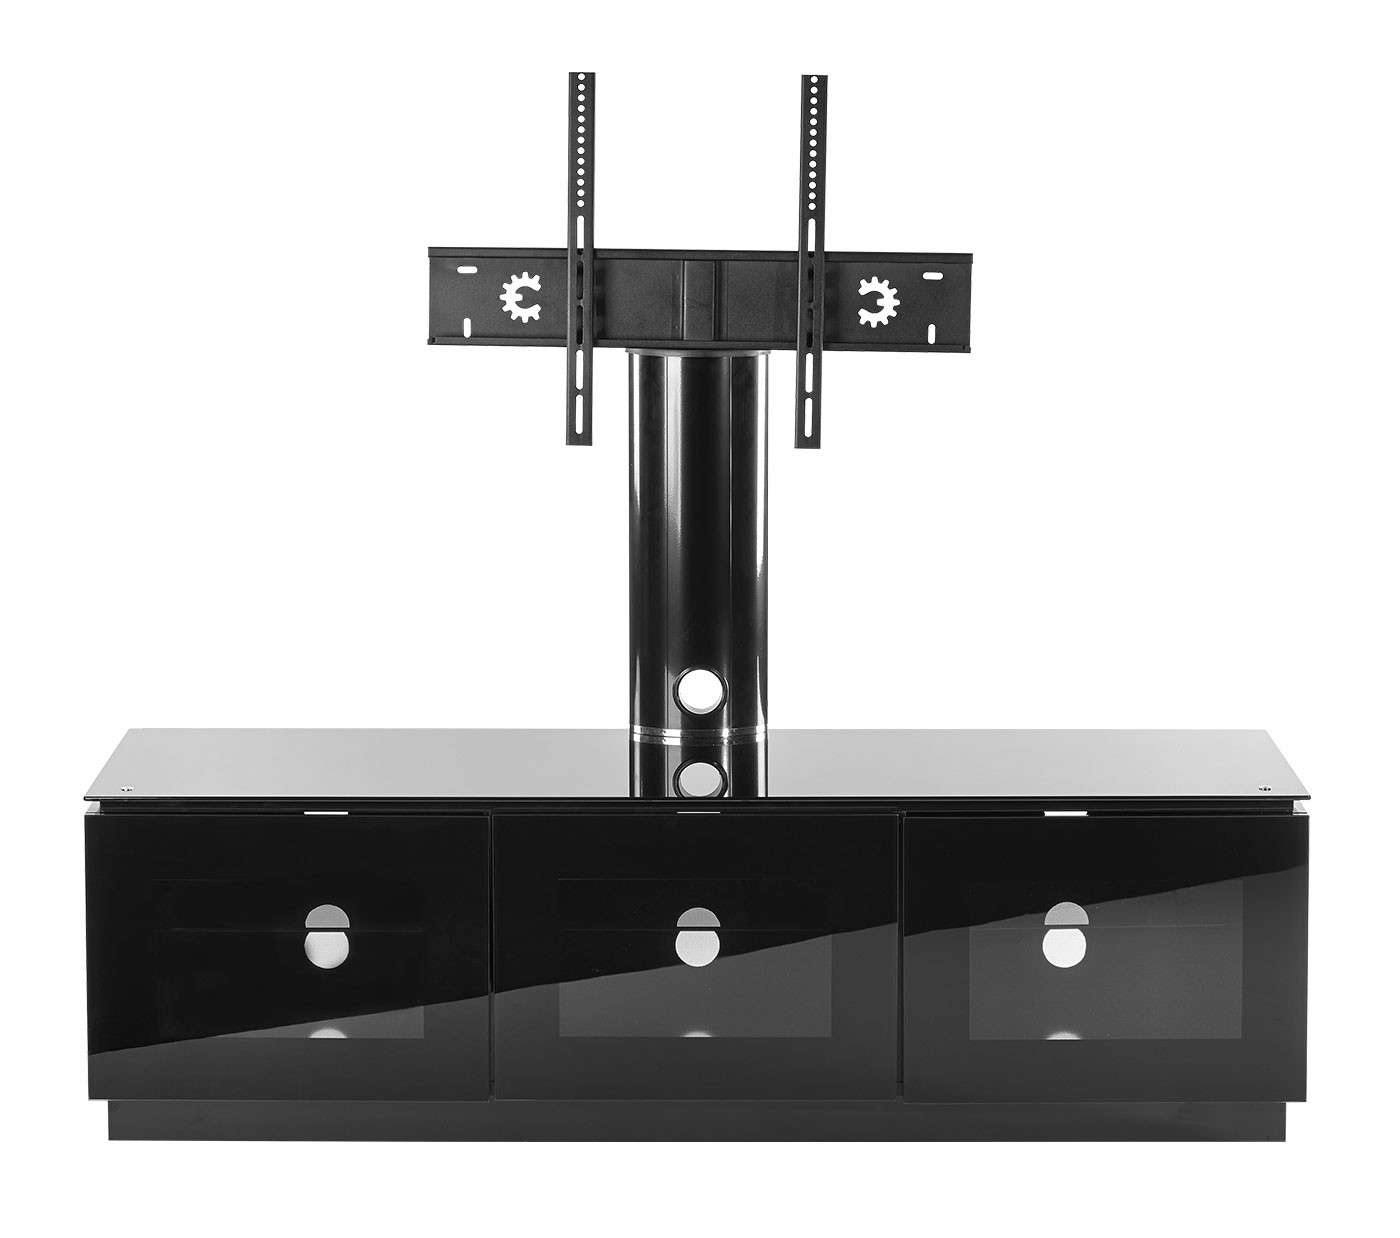 Black Tv Cabinet With Mount For Up To 65 Inch Tv | Mmt D1500 Xarm In Black Gloss Tv Stands (View 7 of 20)